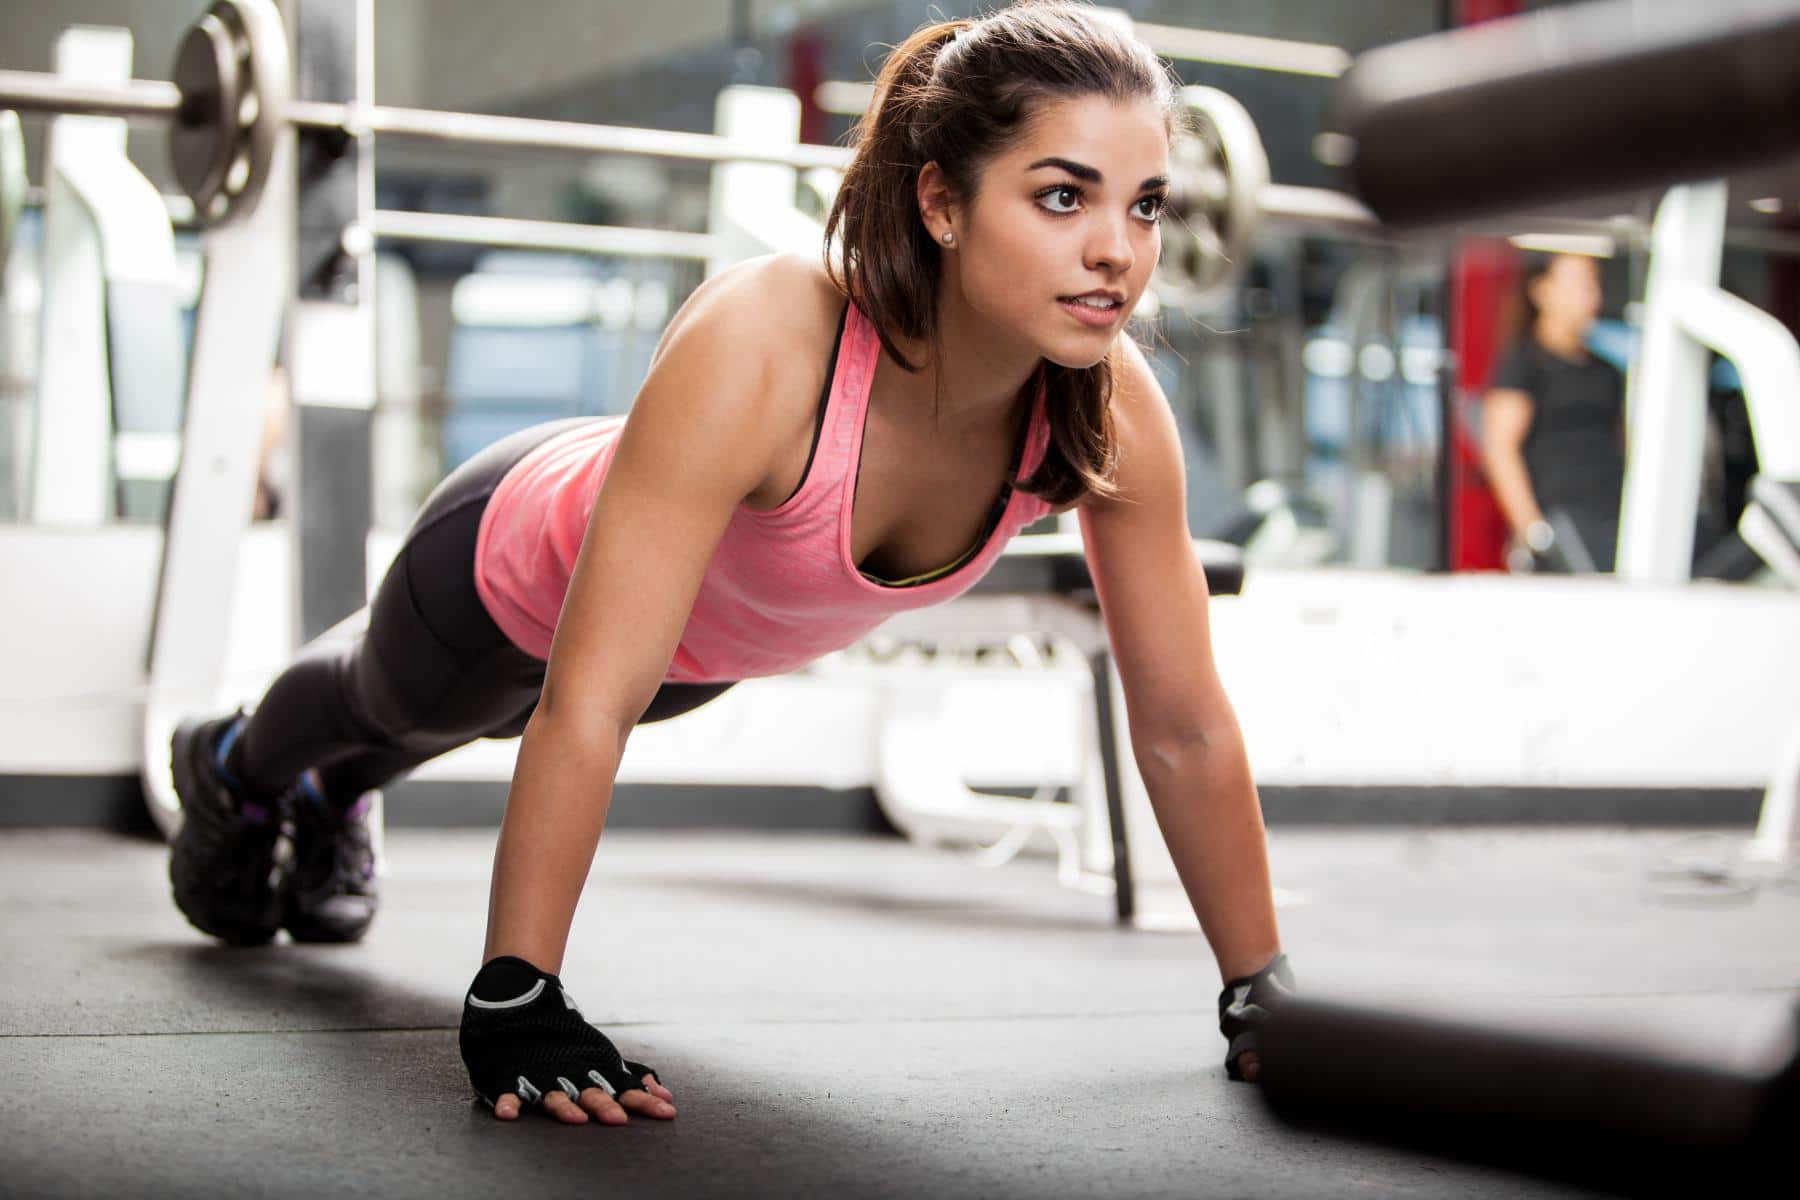 woman holds plank in gym